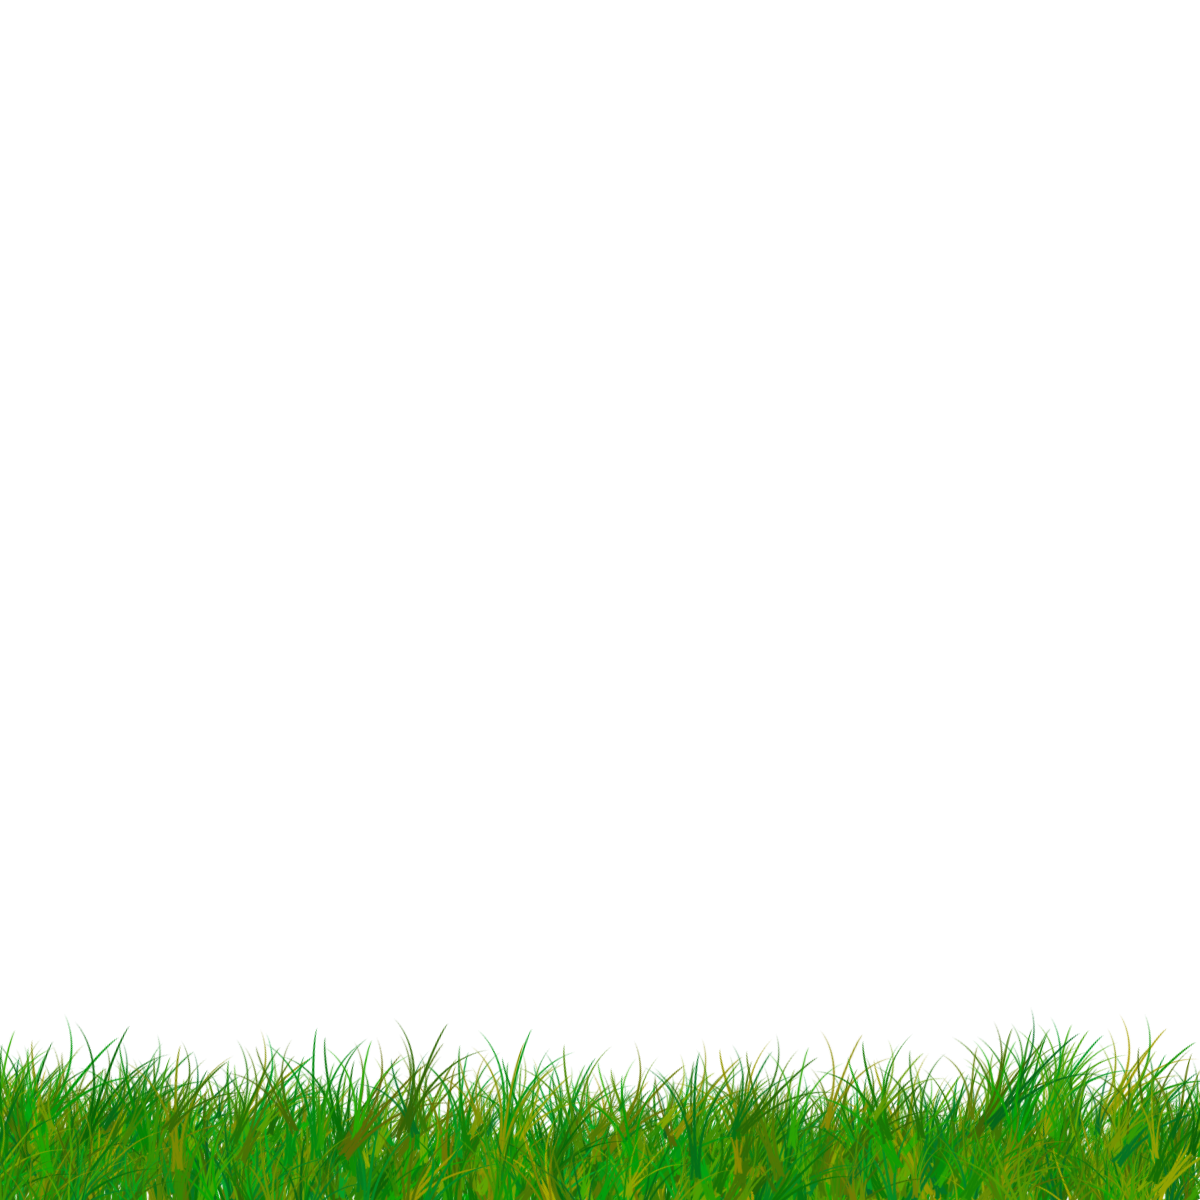 Free Download High Quality Cartoon Grass Png Image Without Background Its A Good Quality Vector Png Image Of Green Grass It Cartoon Grass Grass Cartoon Trees